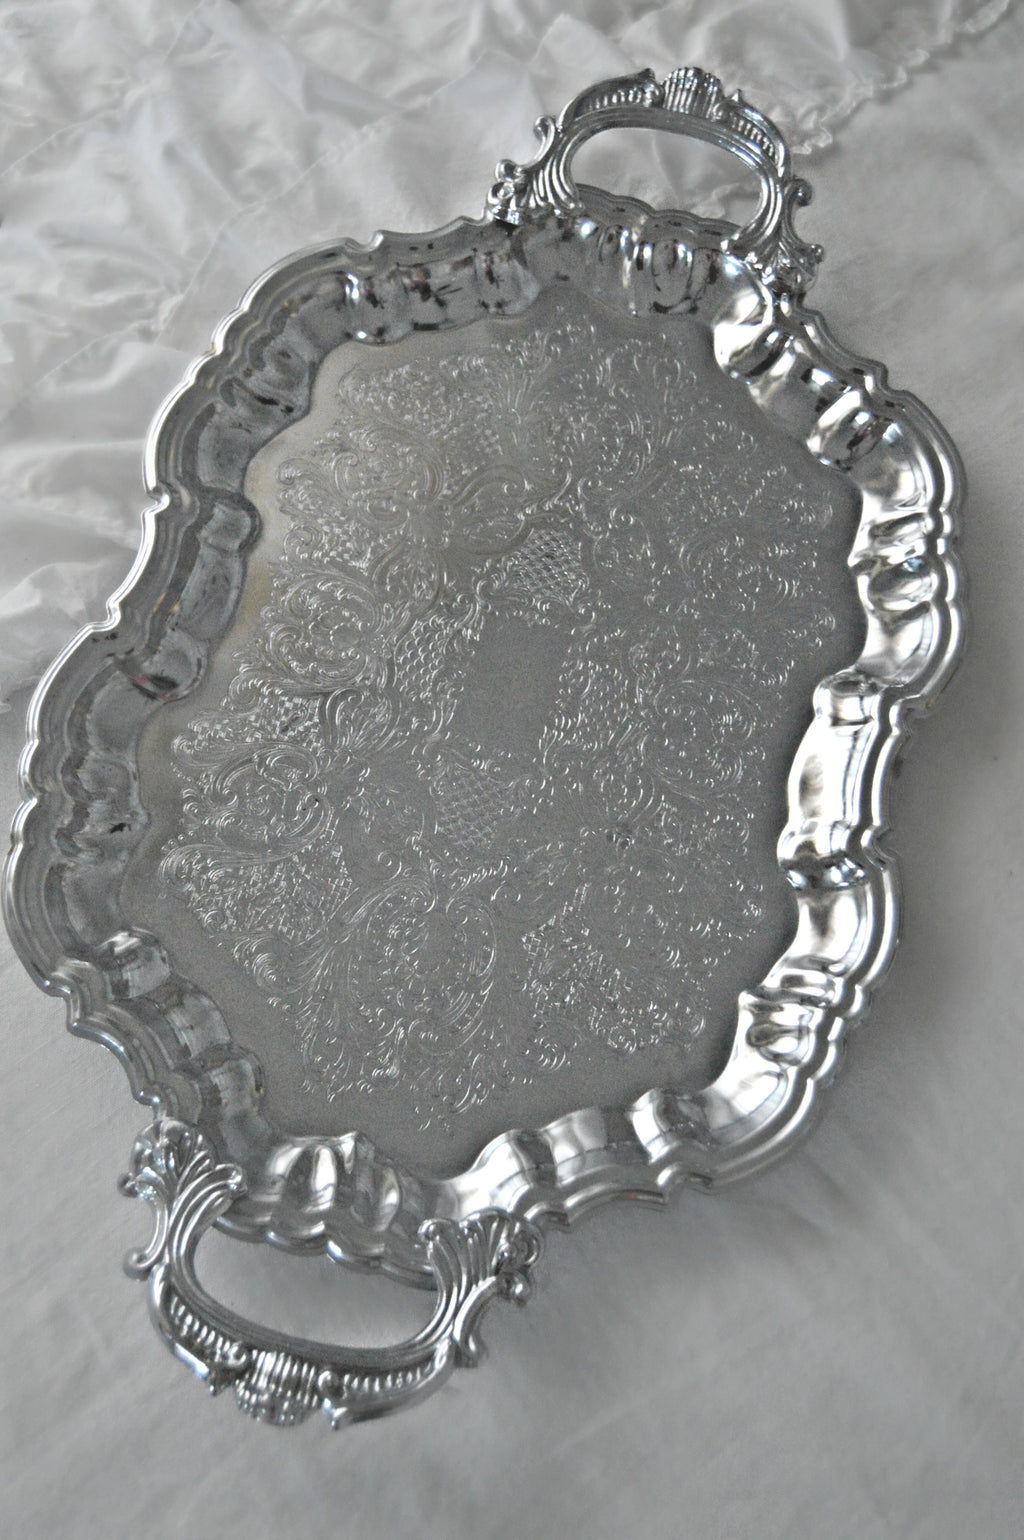 Ornate silver vintage serving trays